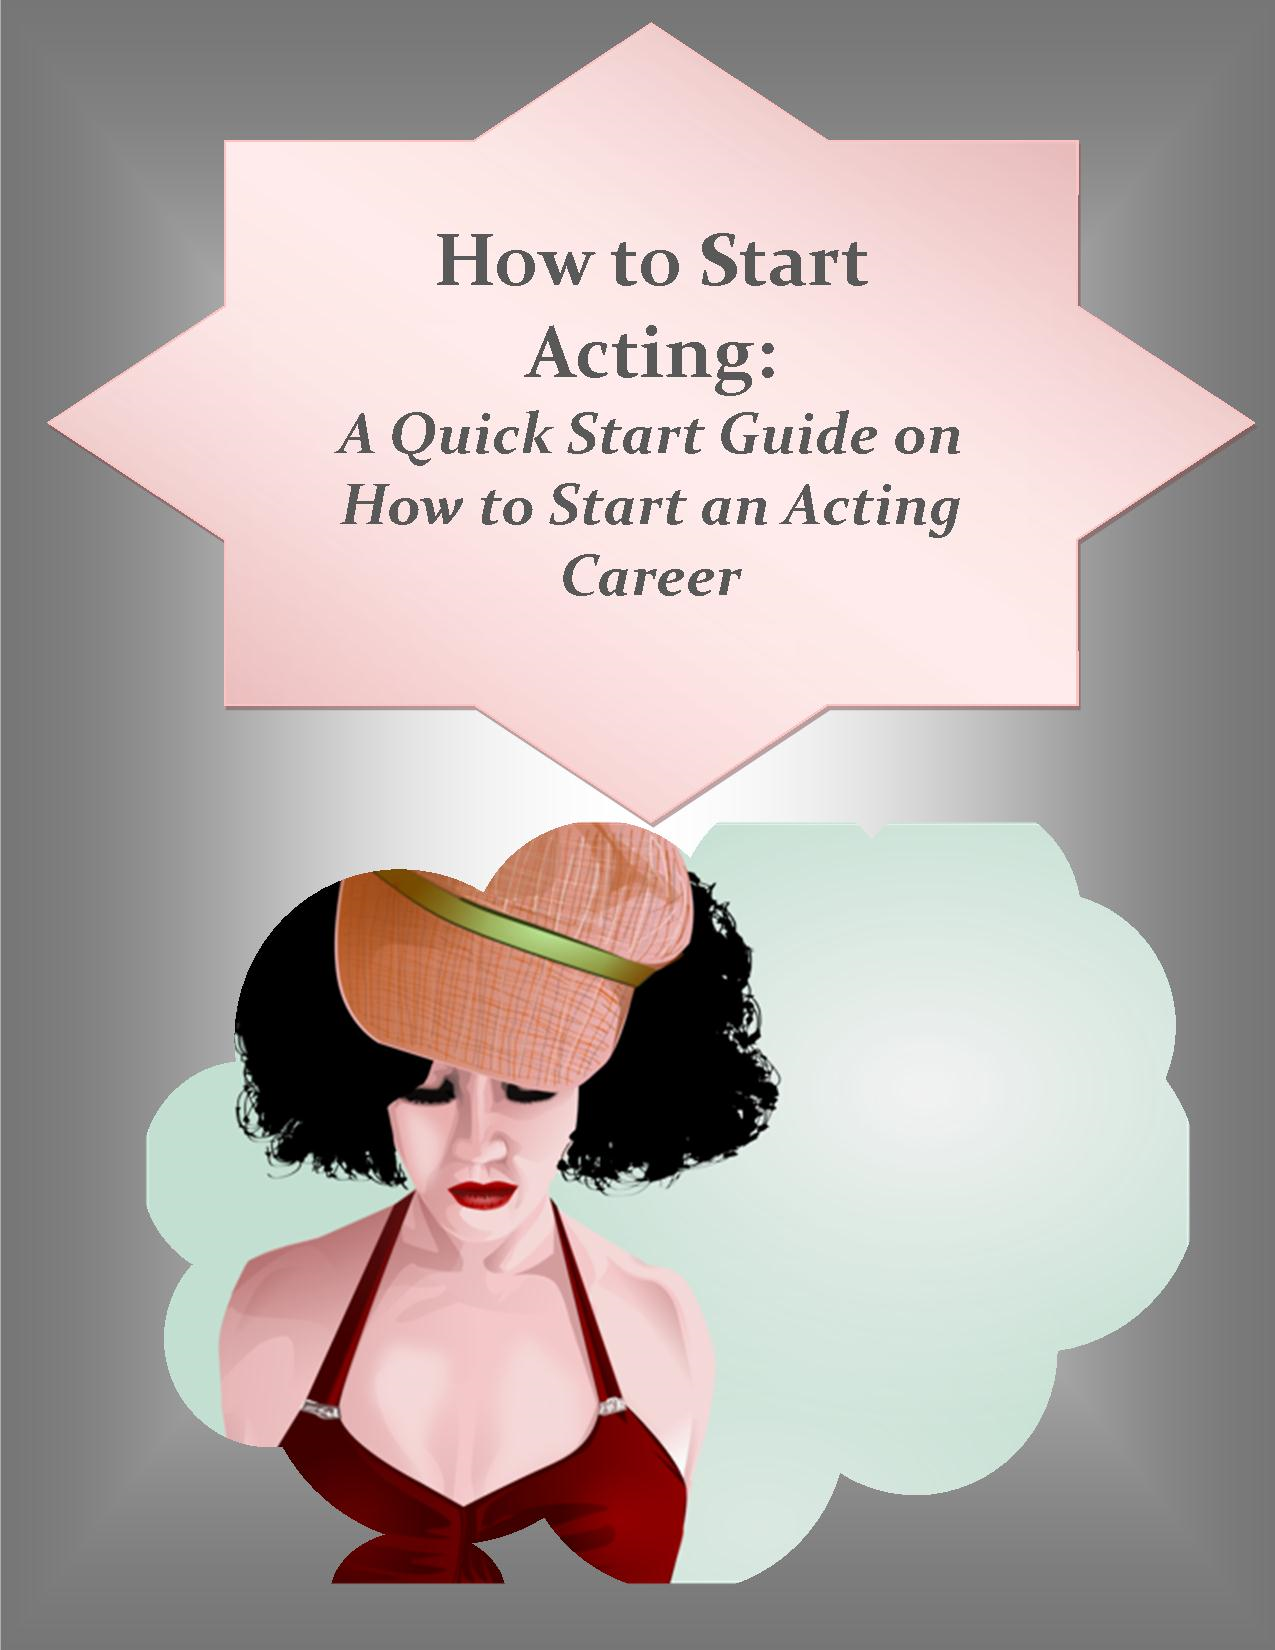 How to Start Acting: A Quick Start Guide on How to Start an Acting Career